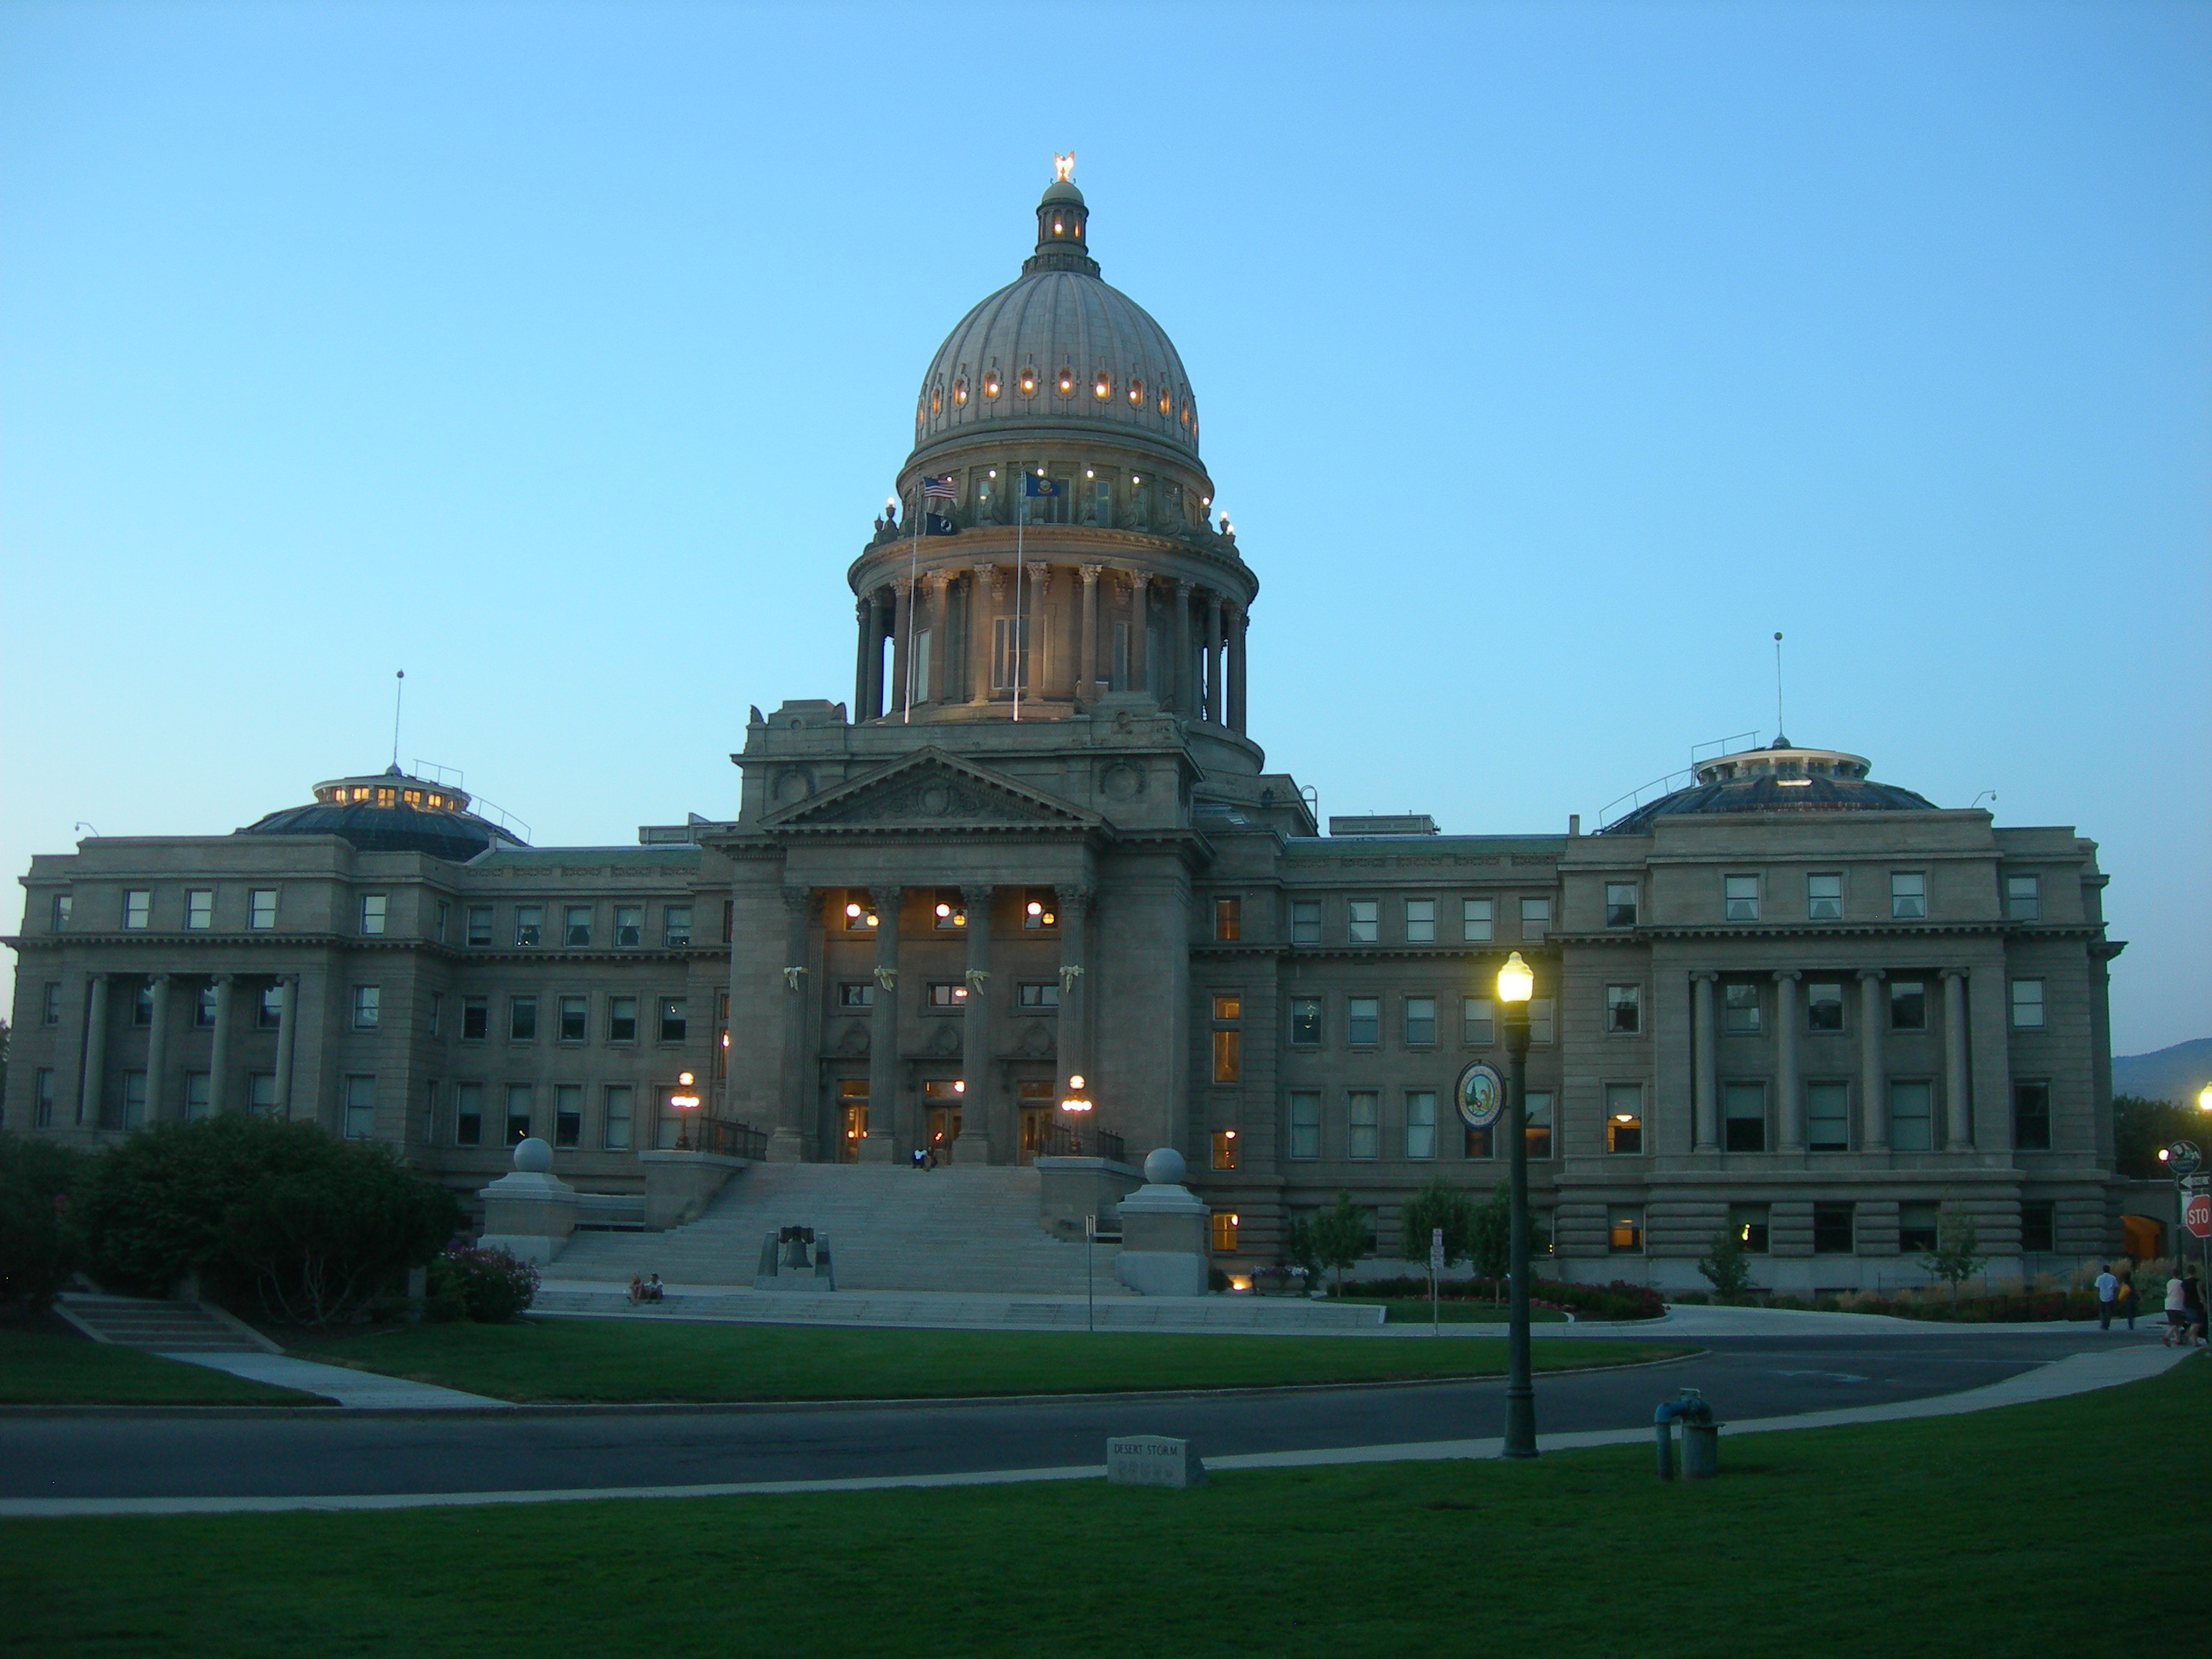 Idaho State Capitol in Boise, Idaho. Photo by Flickr user Jimmy Emerson, DVM